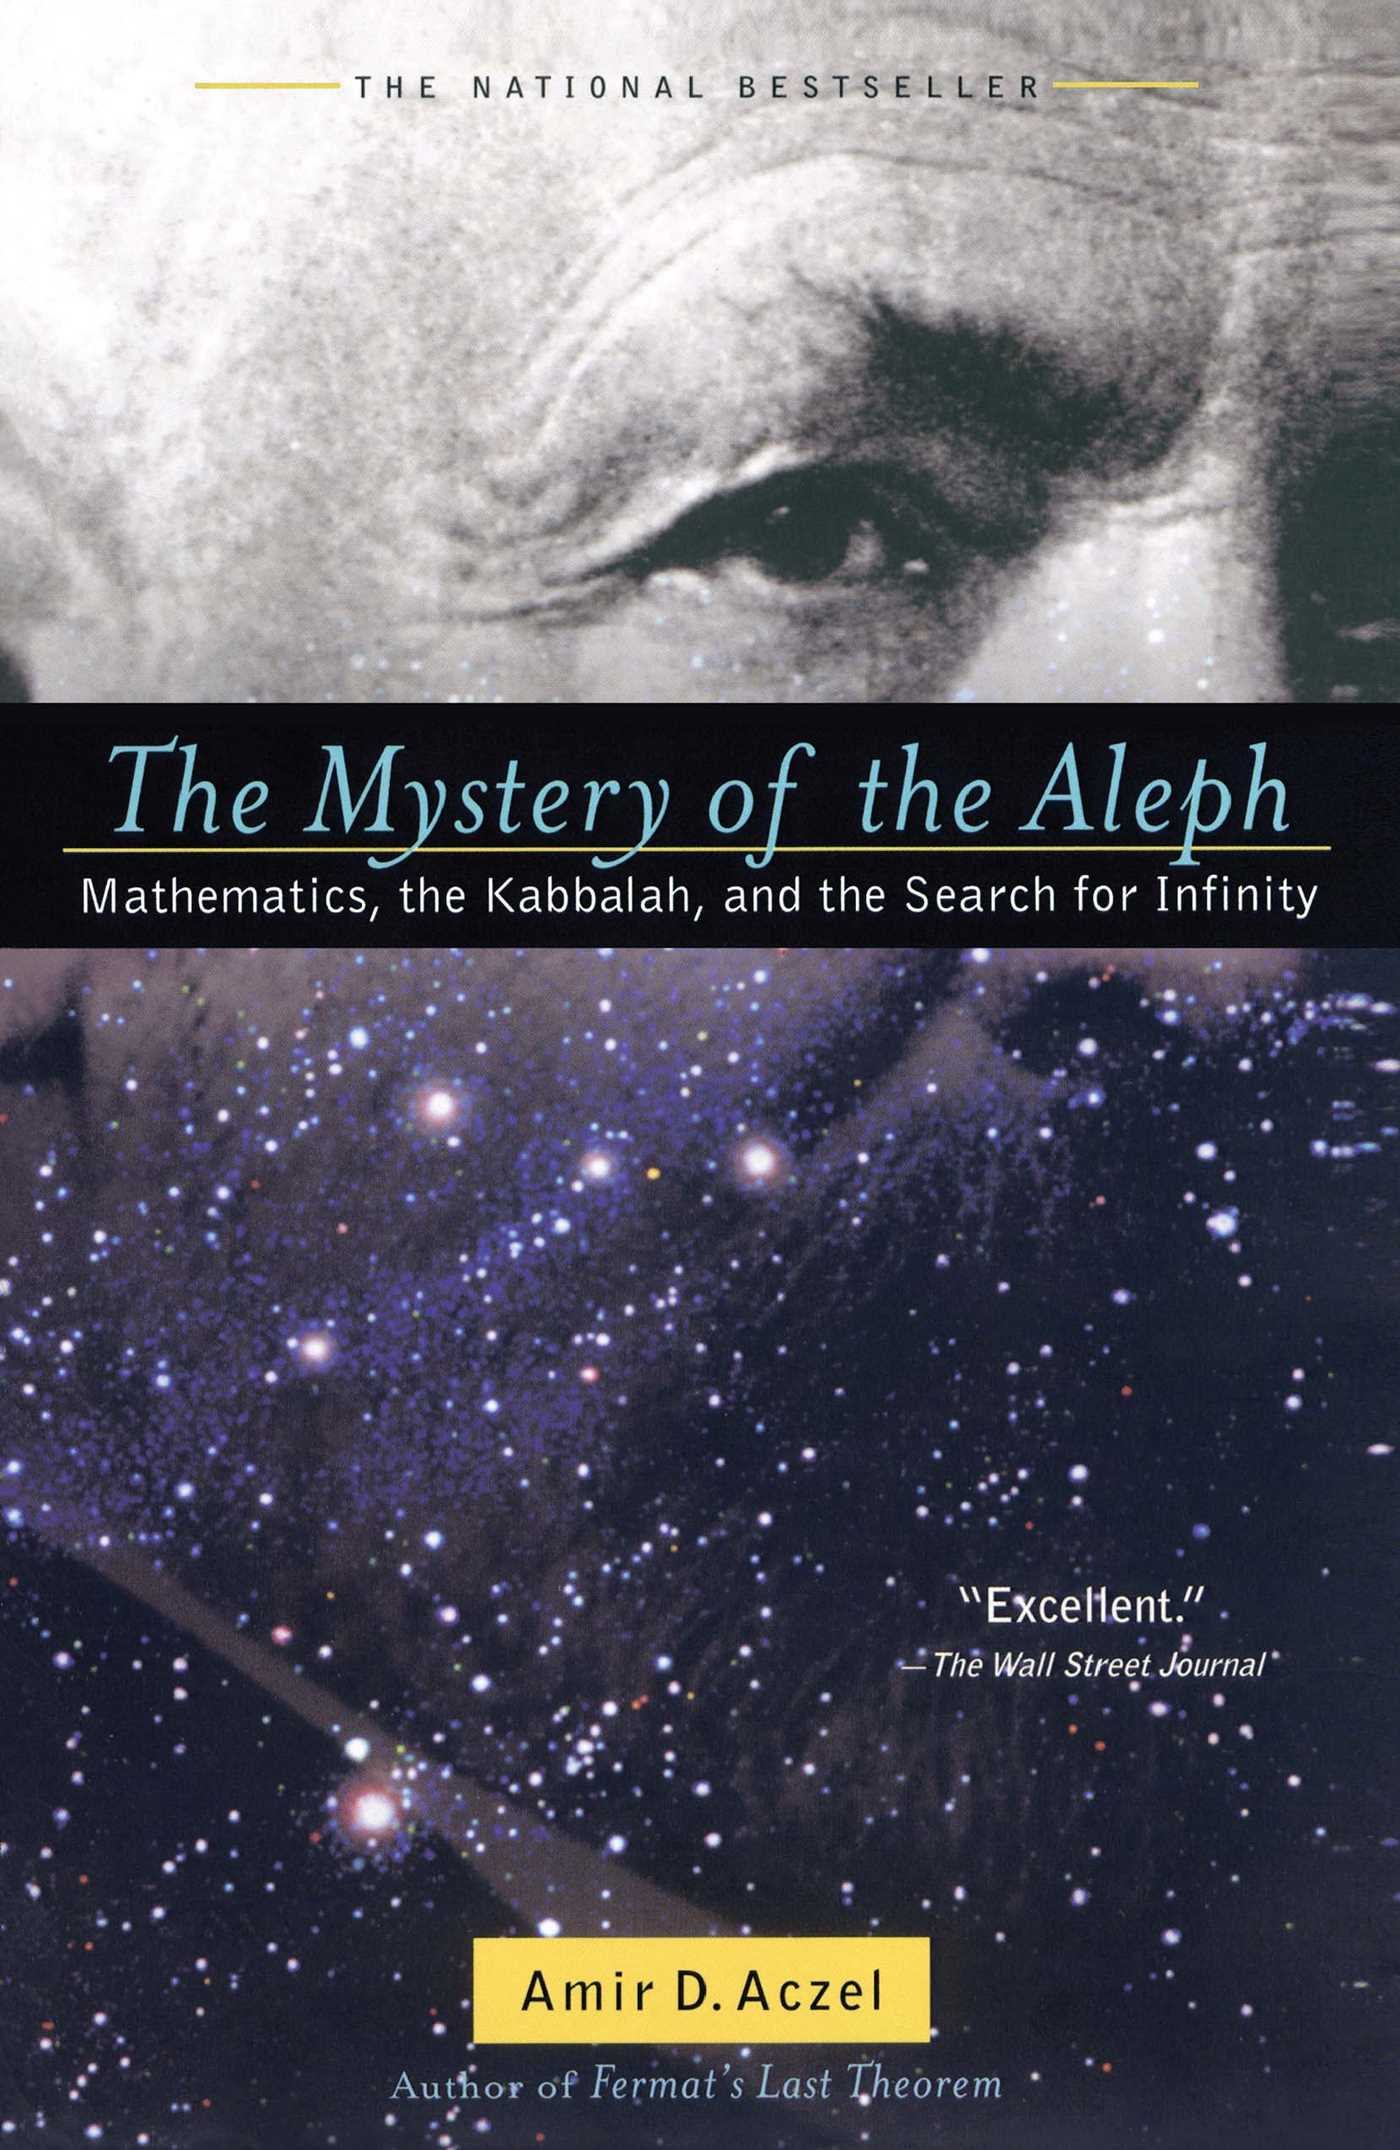 The-mystery-of-the-aleph-9780743422994_hr